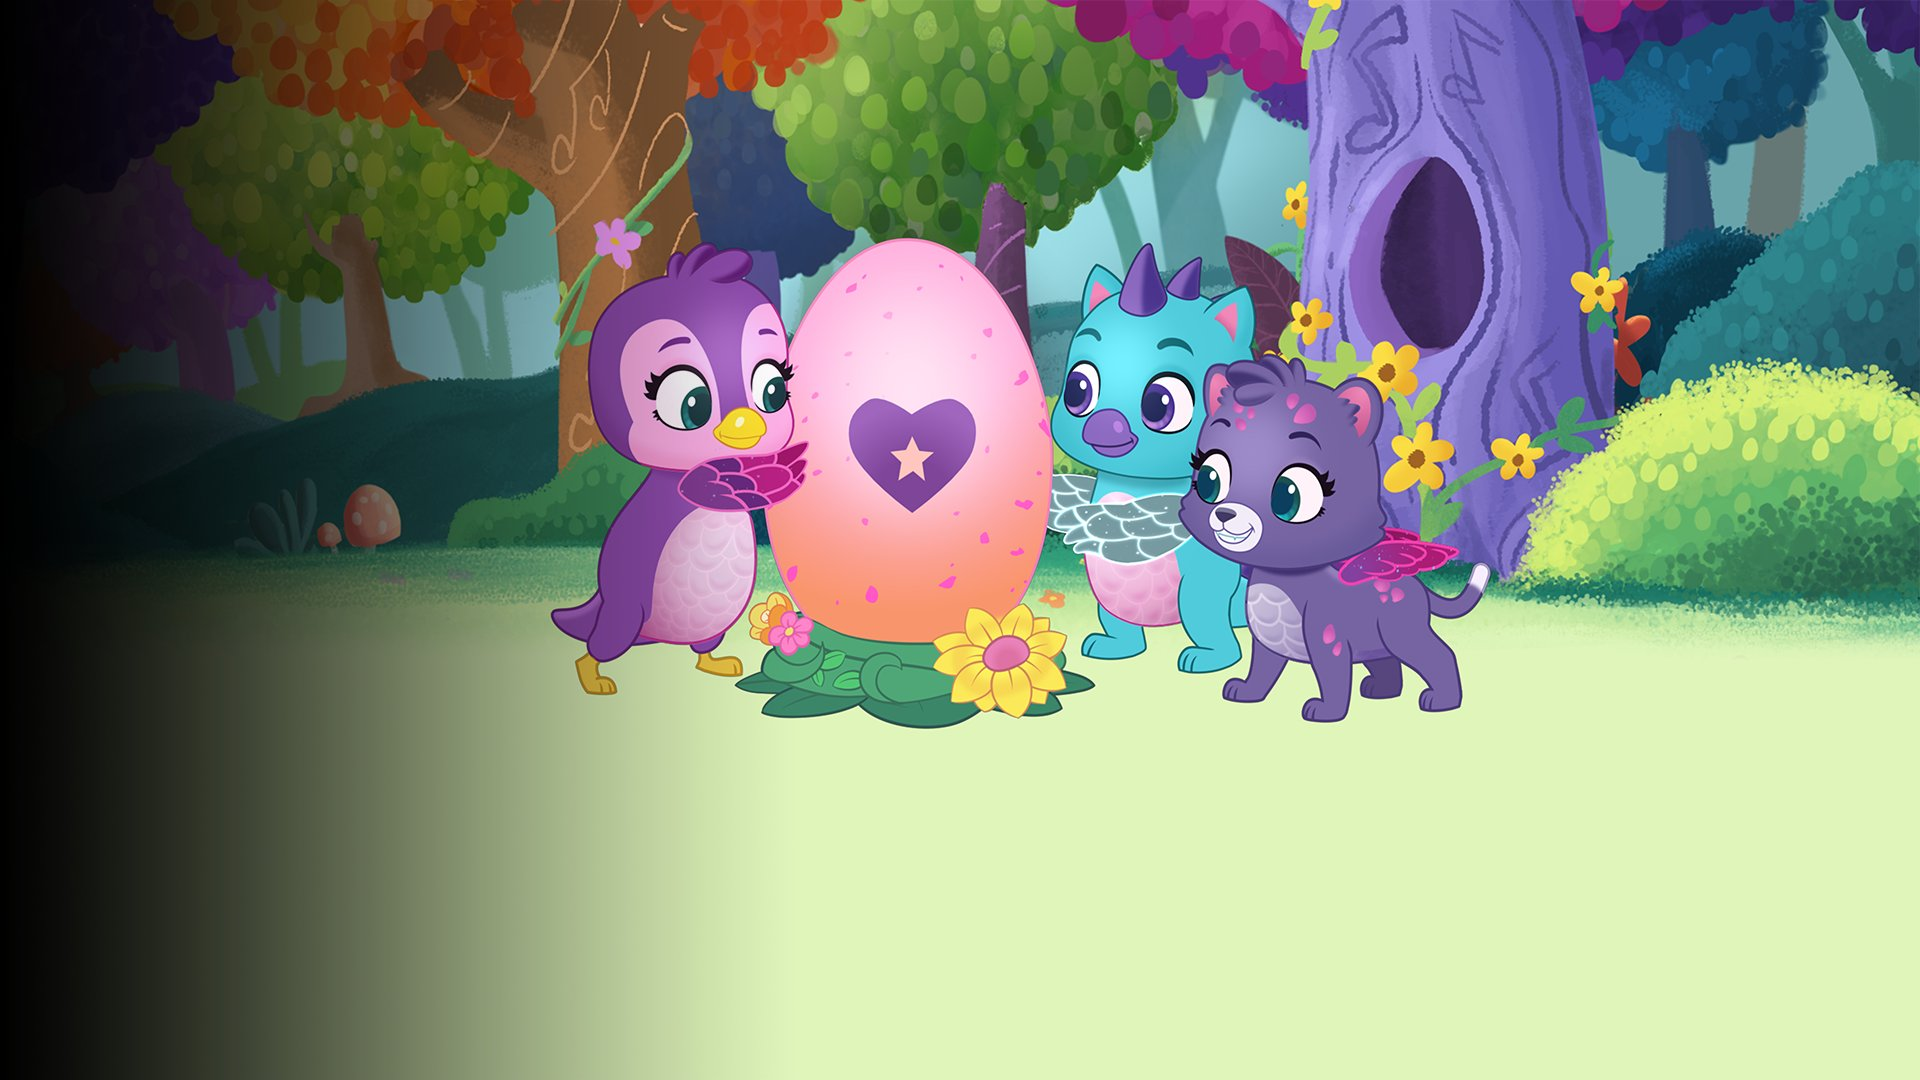 fond Hatchimals